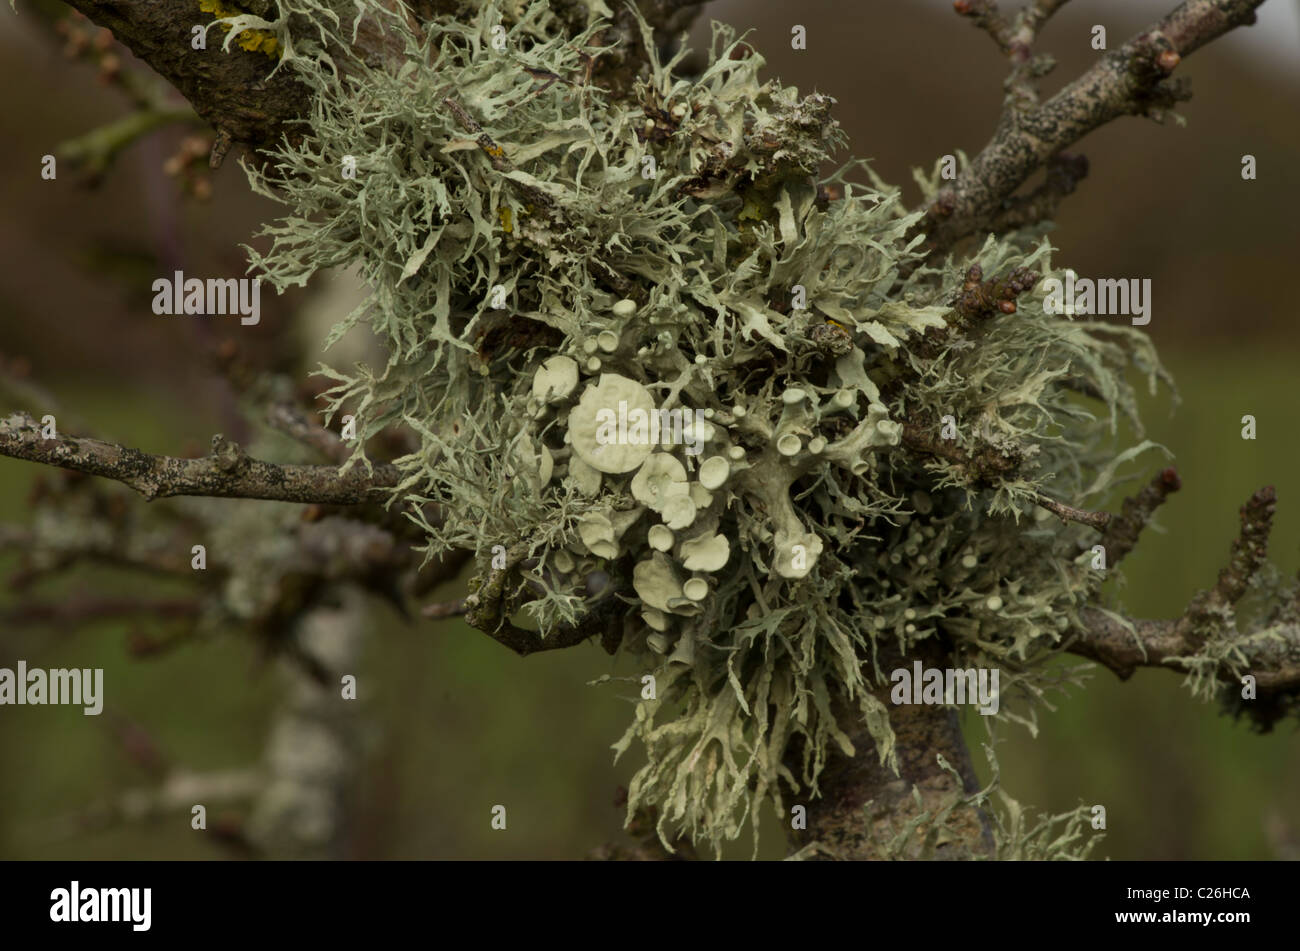 Ramalina lichen on a tree branch, a fairly common in areas of clean air - Stock Image